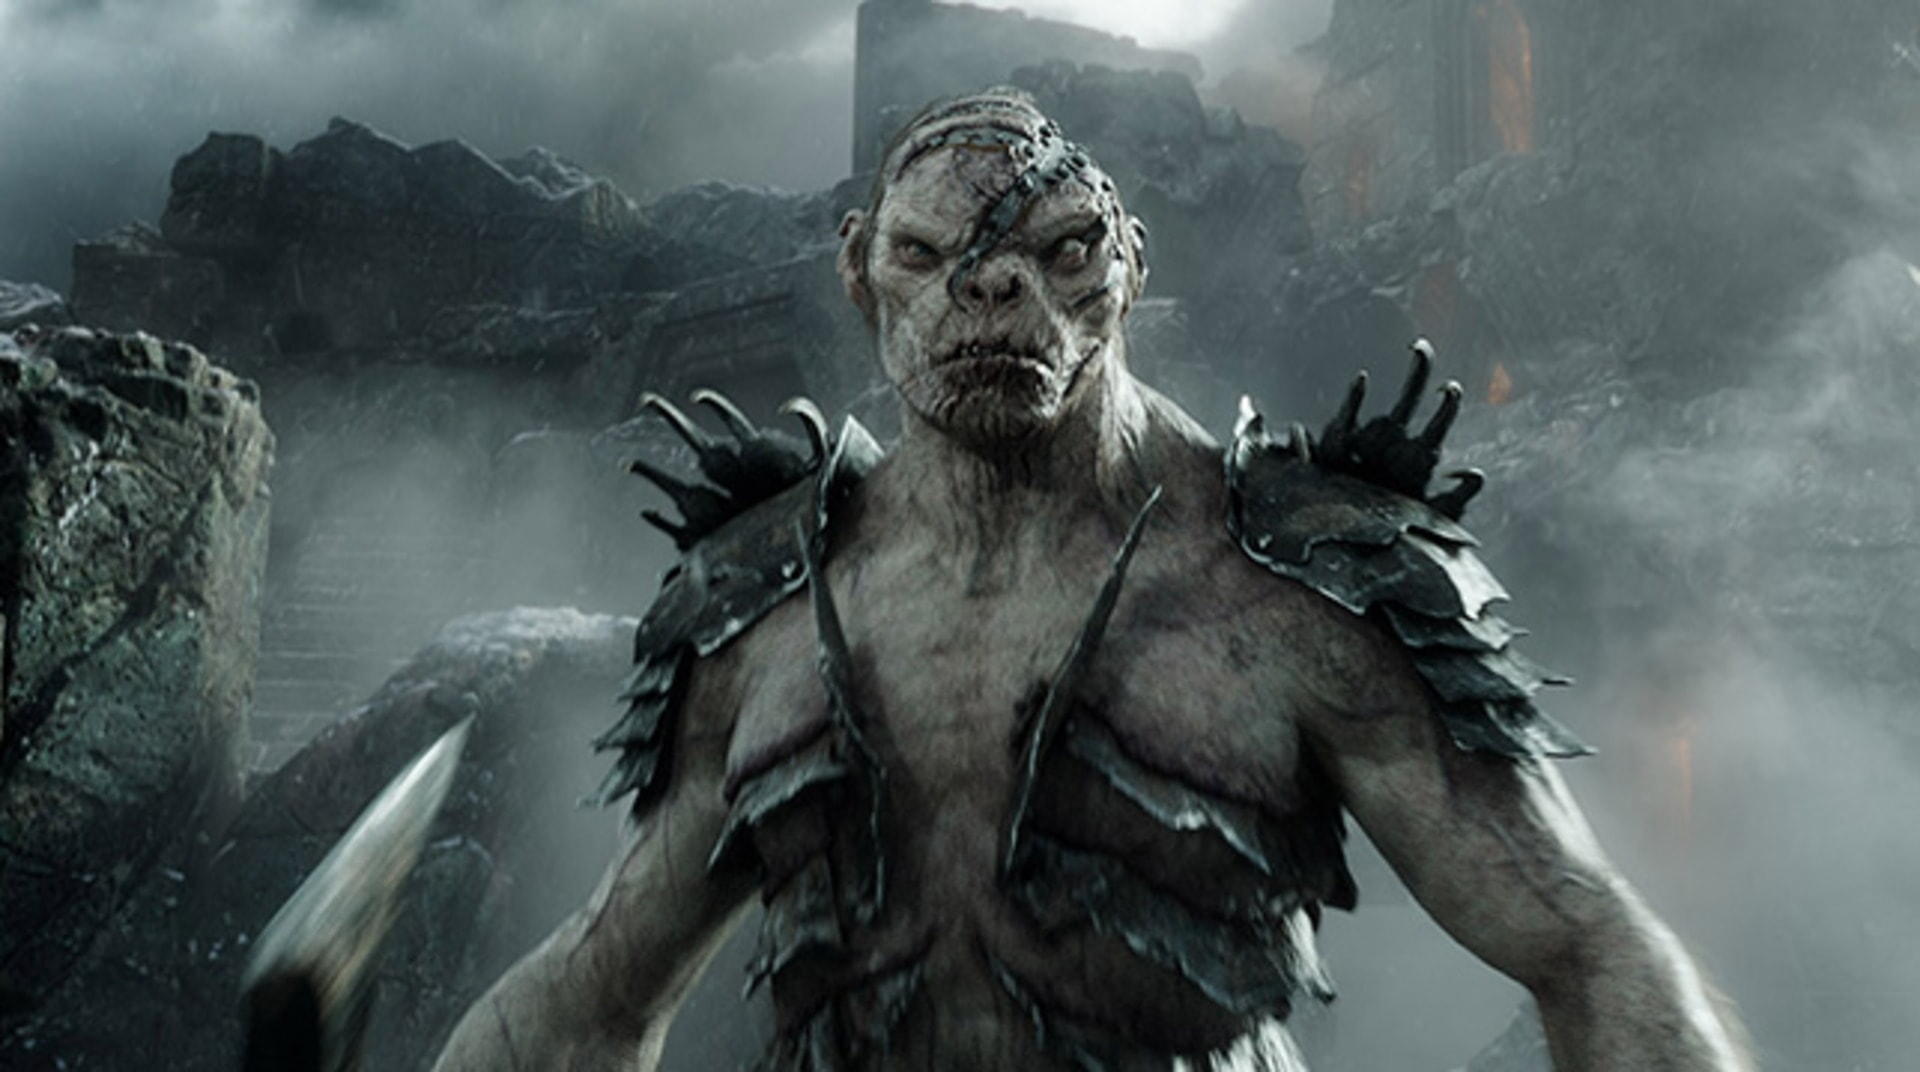 The Hobbit: The Battle of the Five Armies - Image 55